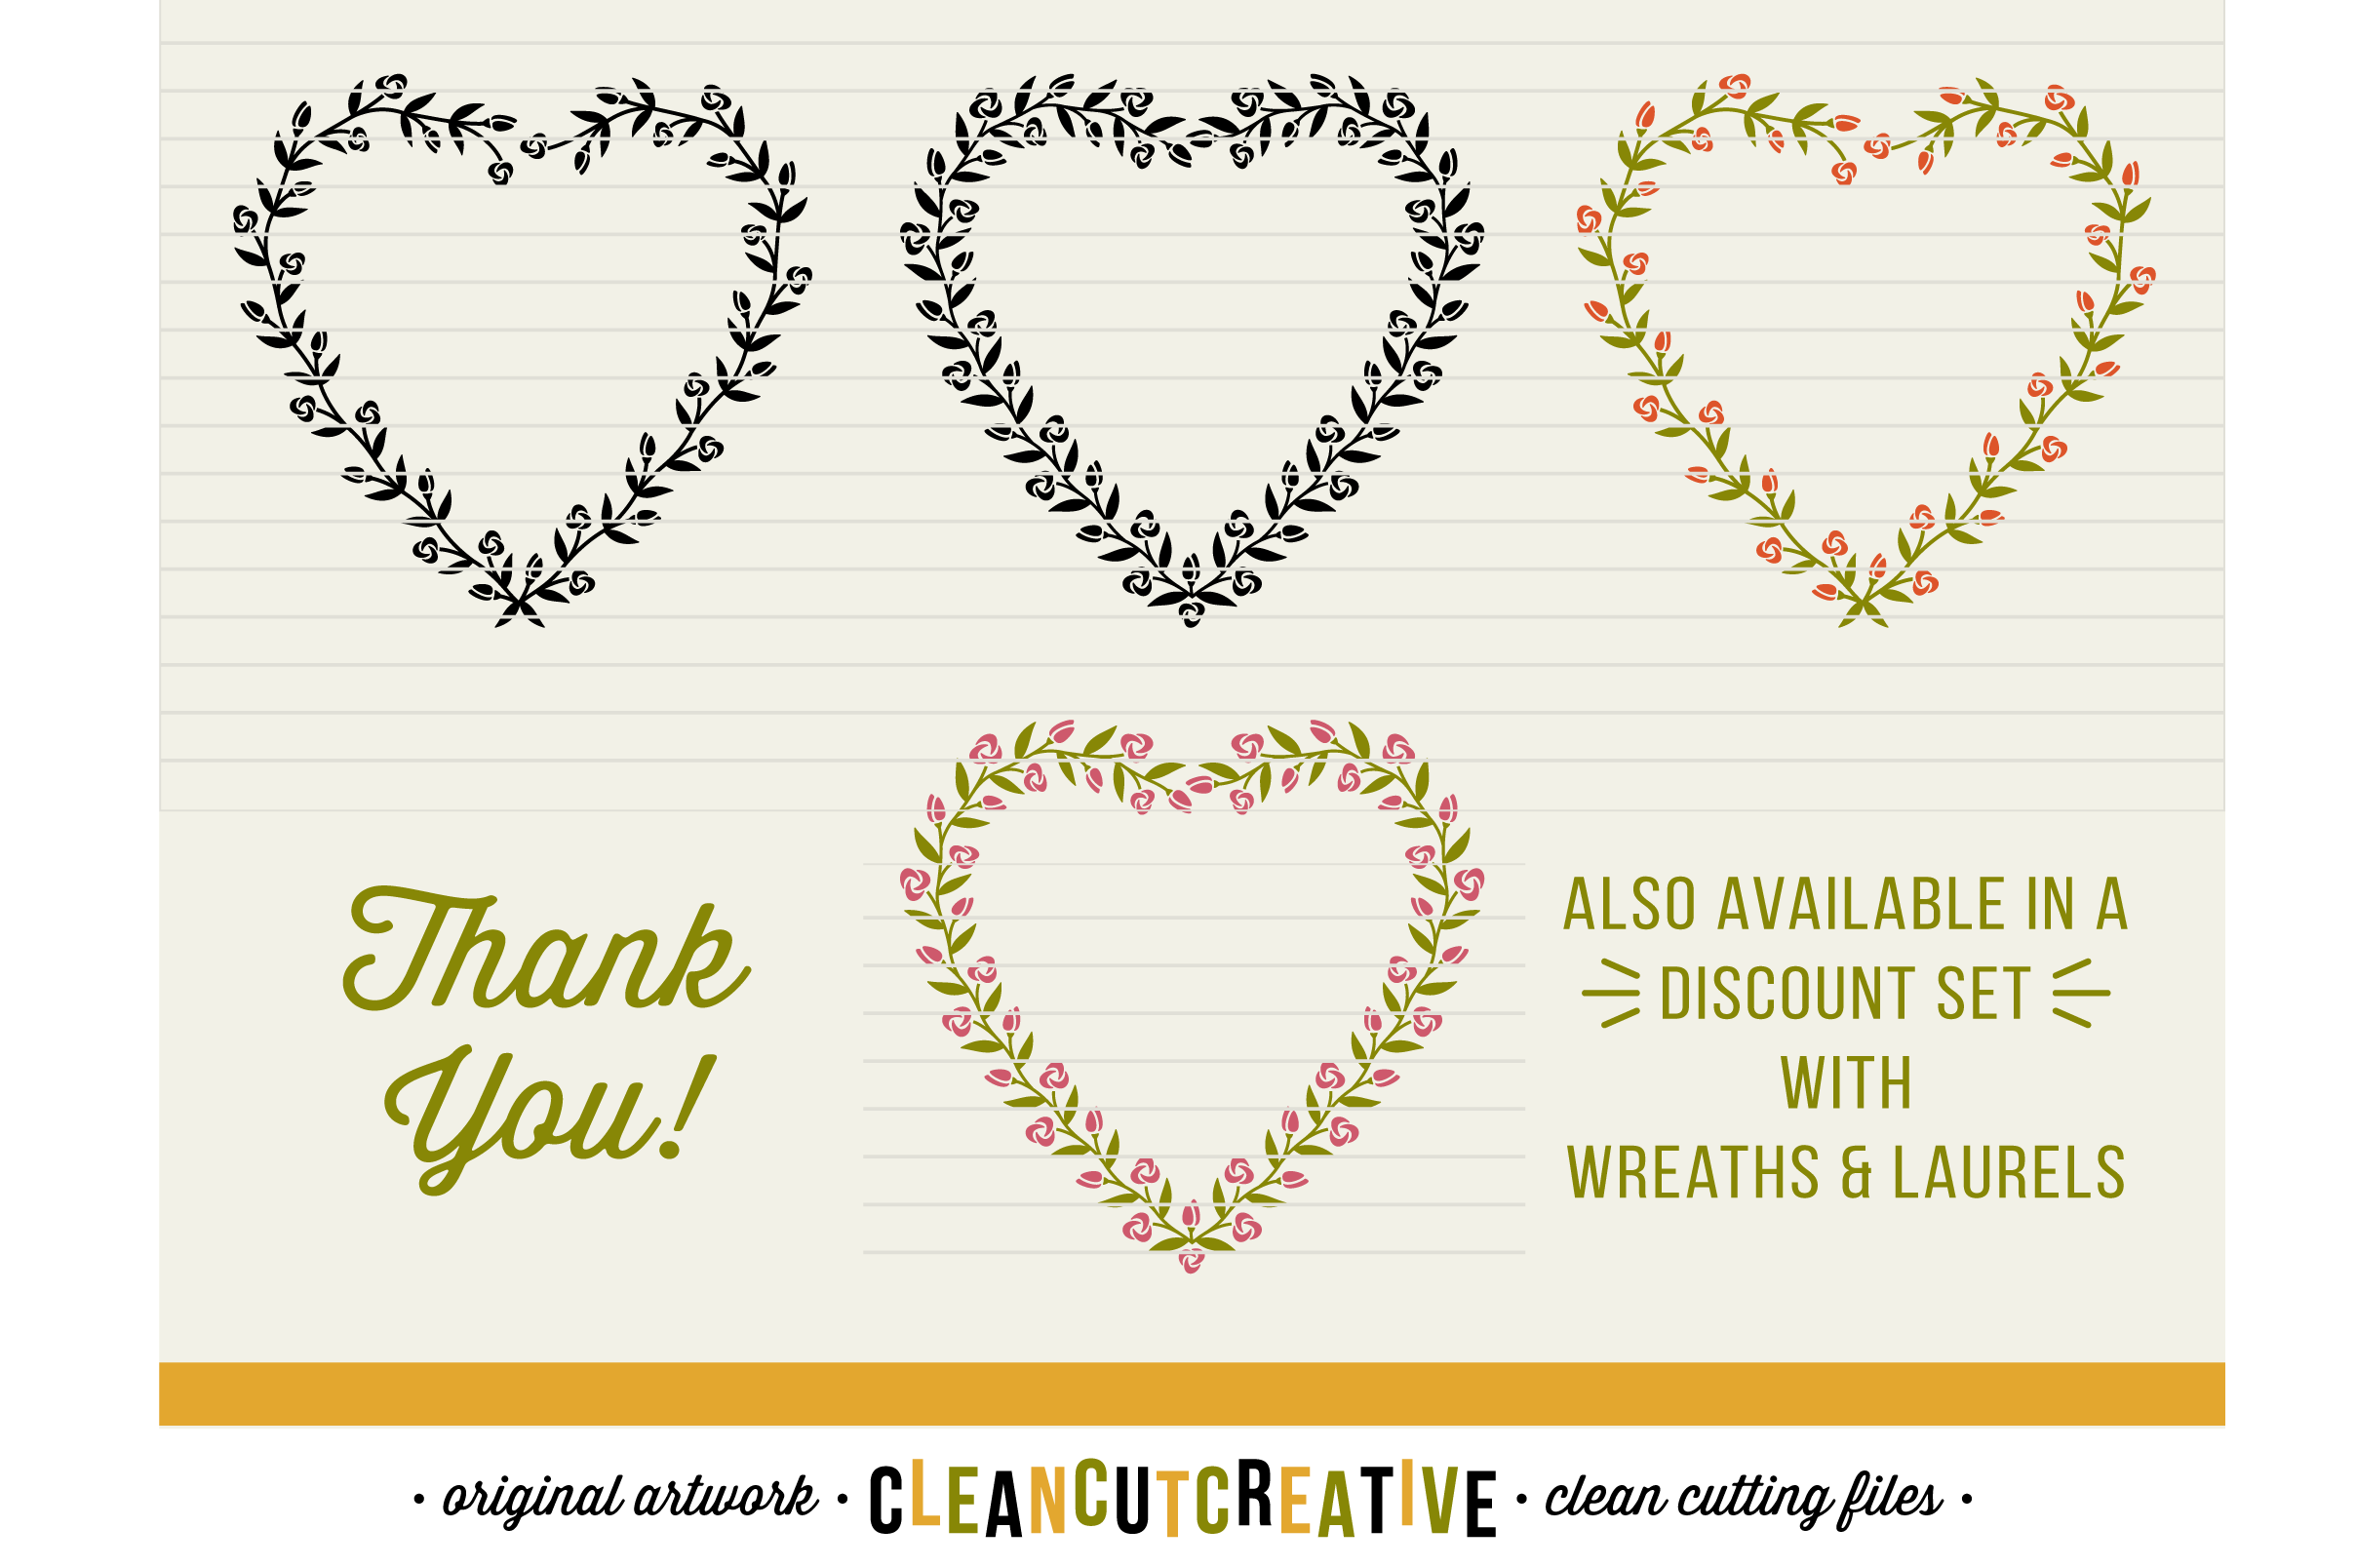 8 svg FLORAL HEARTS floral leaf heart wreath frames - SVG DXF EPS PNG - for Cricut and Silhouette Cameo - clean cutting digital files example image 3